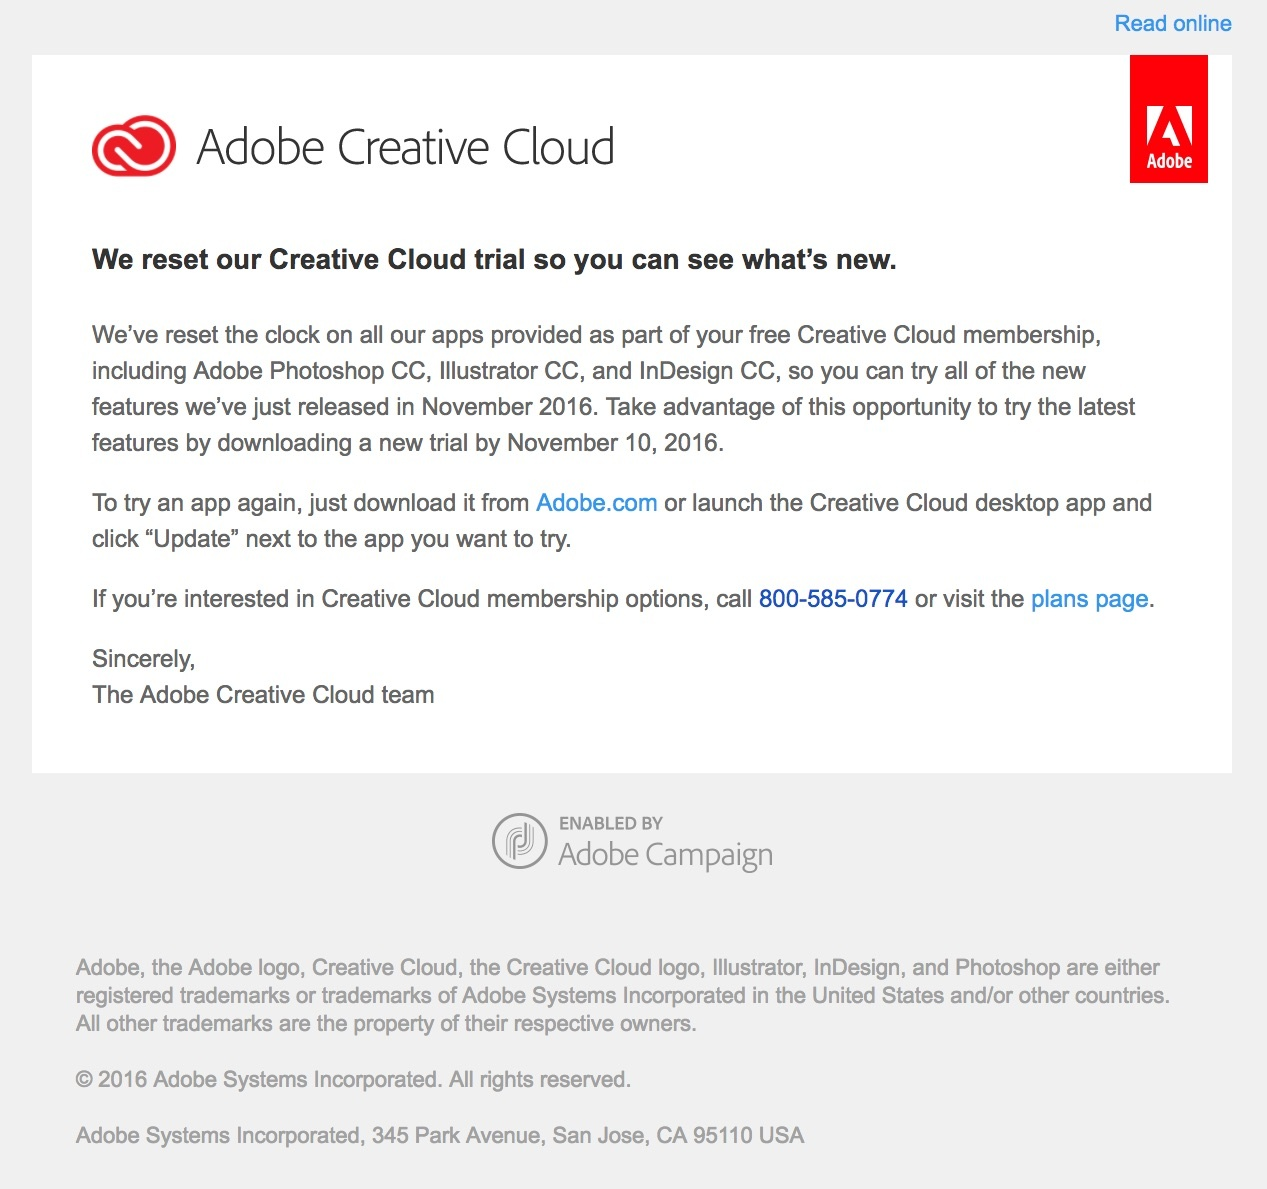 Adobe resets their trial so users don't have to